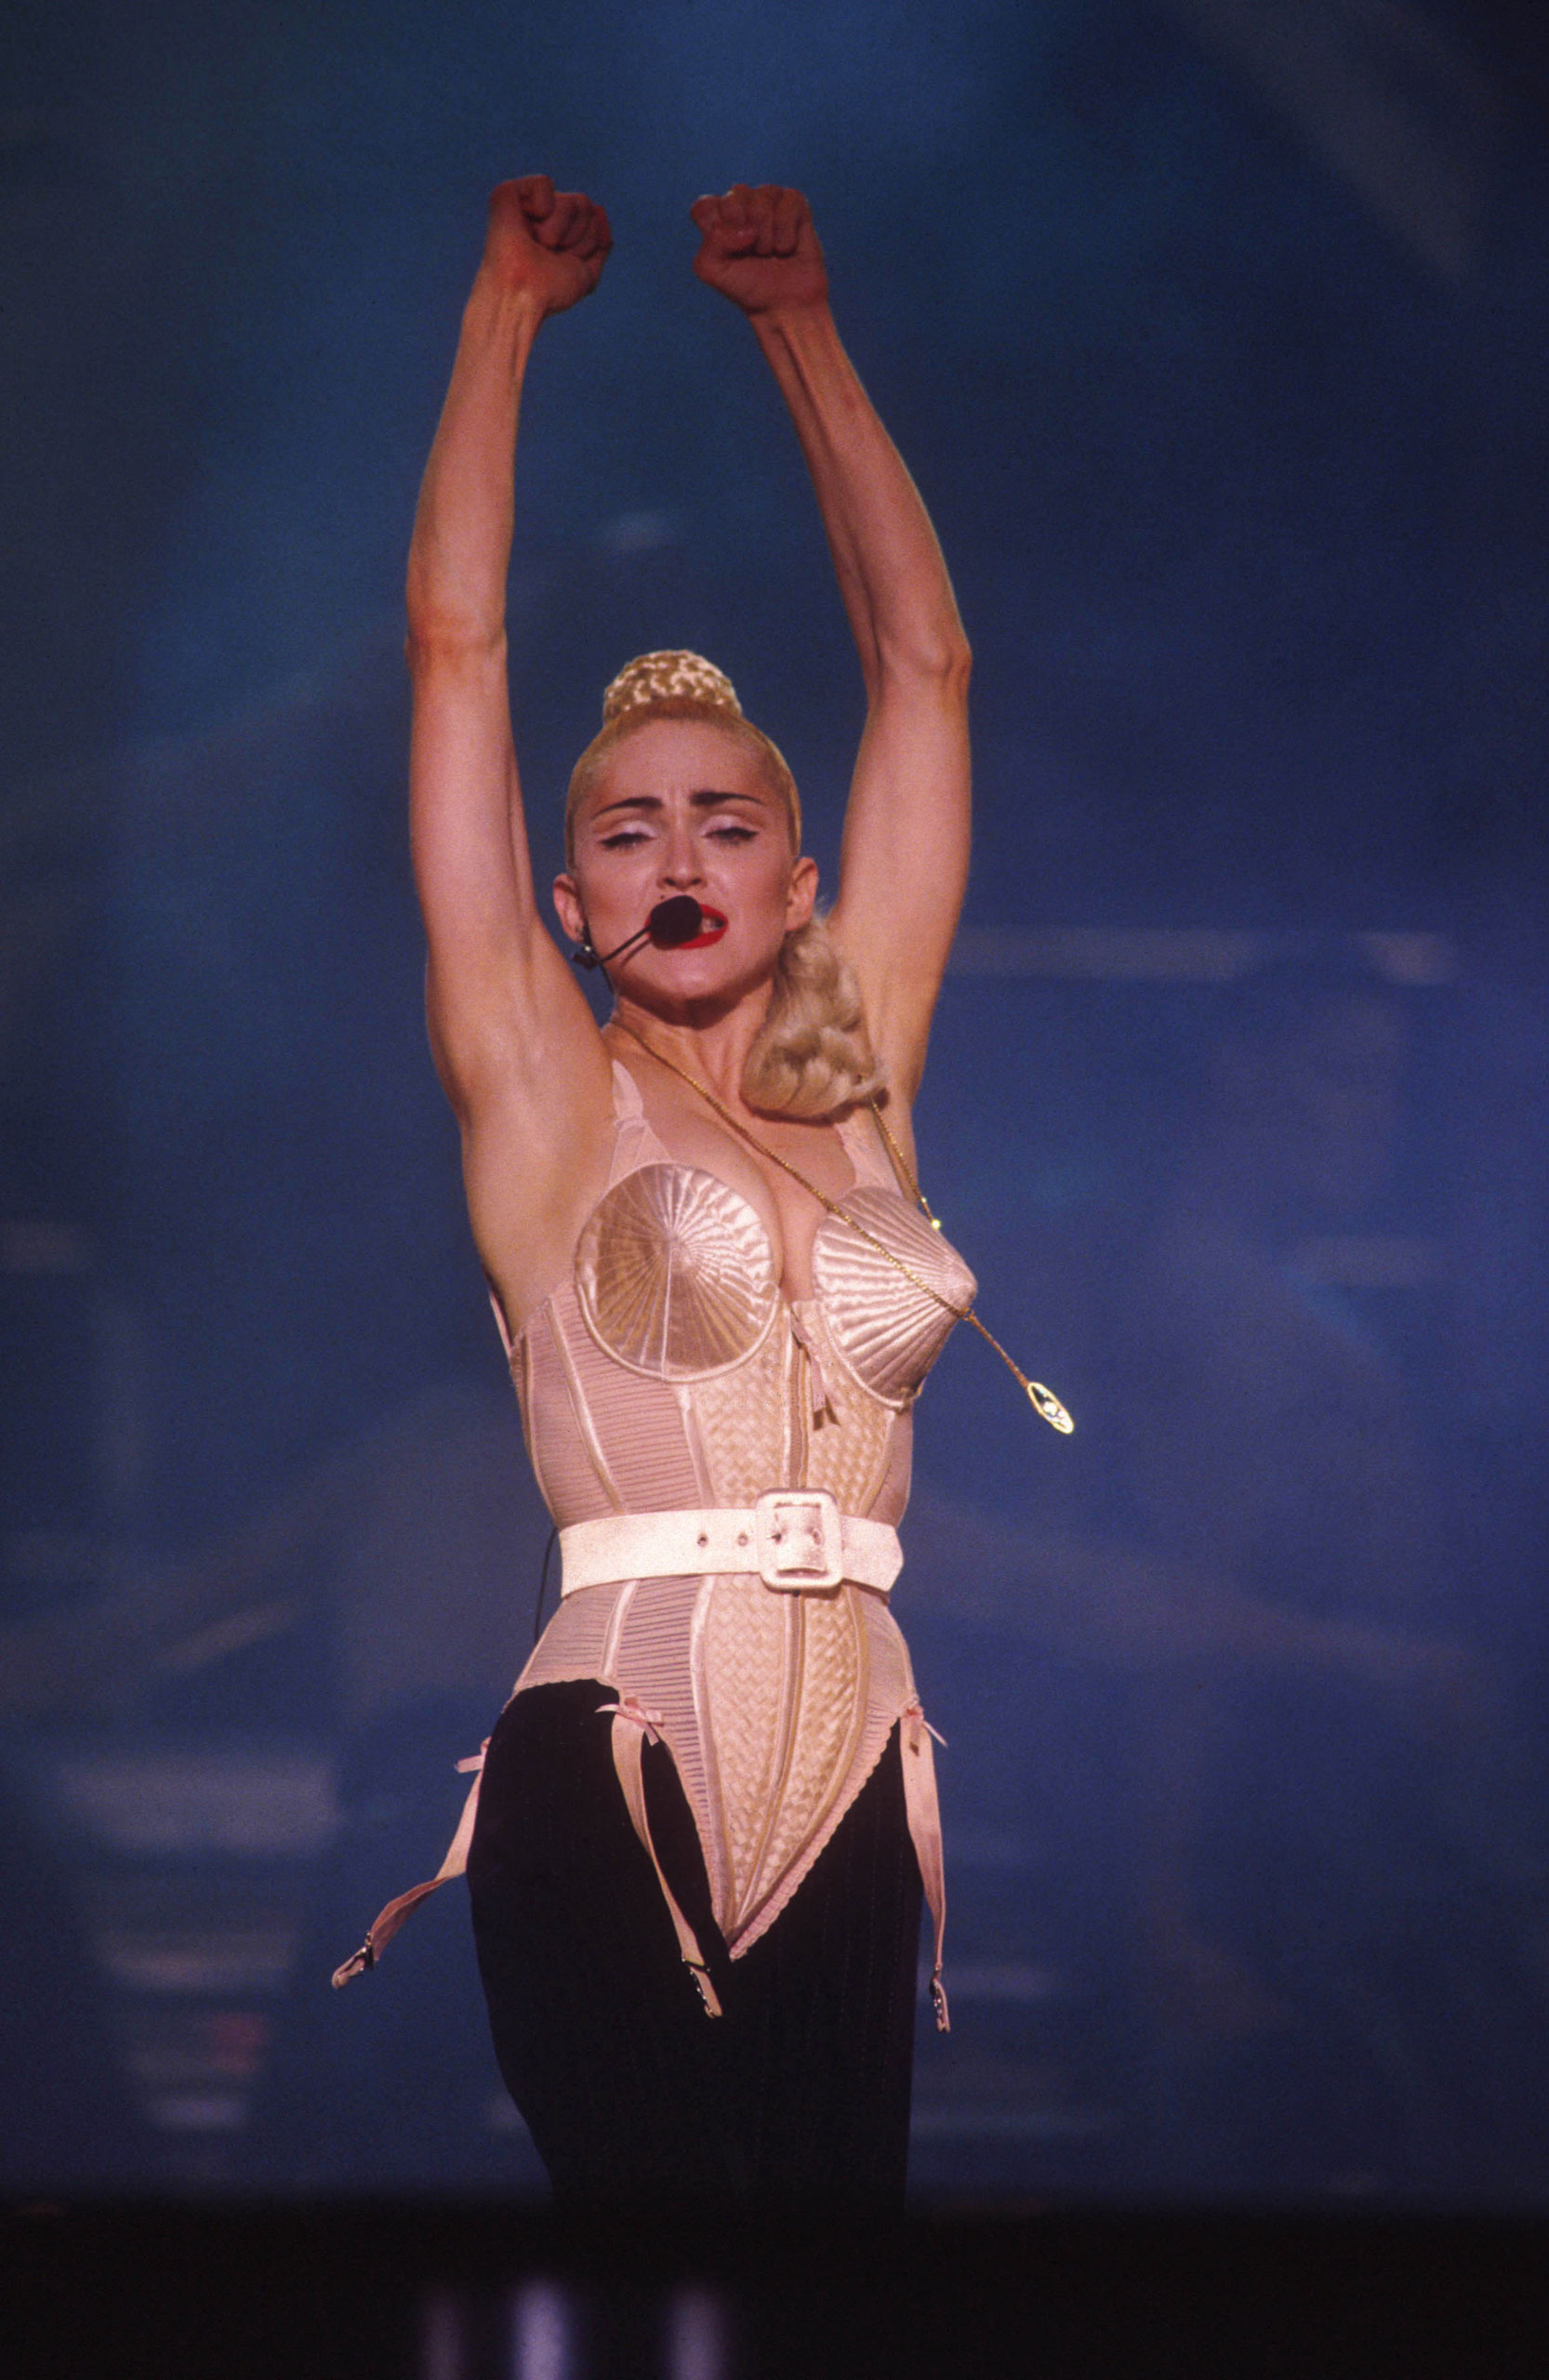 <strong>Madonna's Cone Bra</strong> Created by designer Jean Paul Gaultier for the Material Girl's <i>Blond Ambition</i> tour in 1990, this structured garment a was throwback to the bullet bras and has become one of the star's most memorable looks.